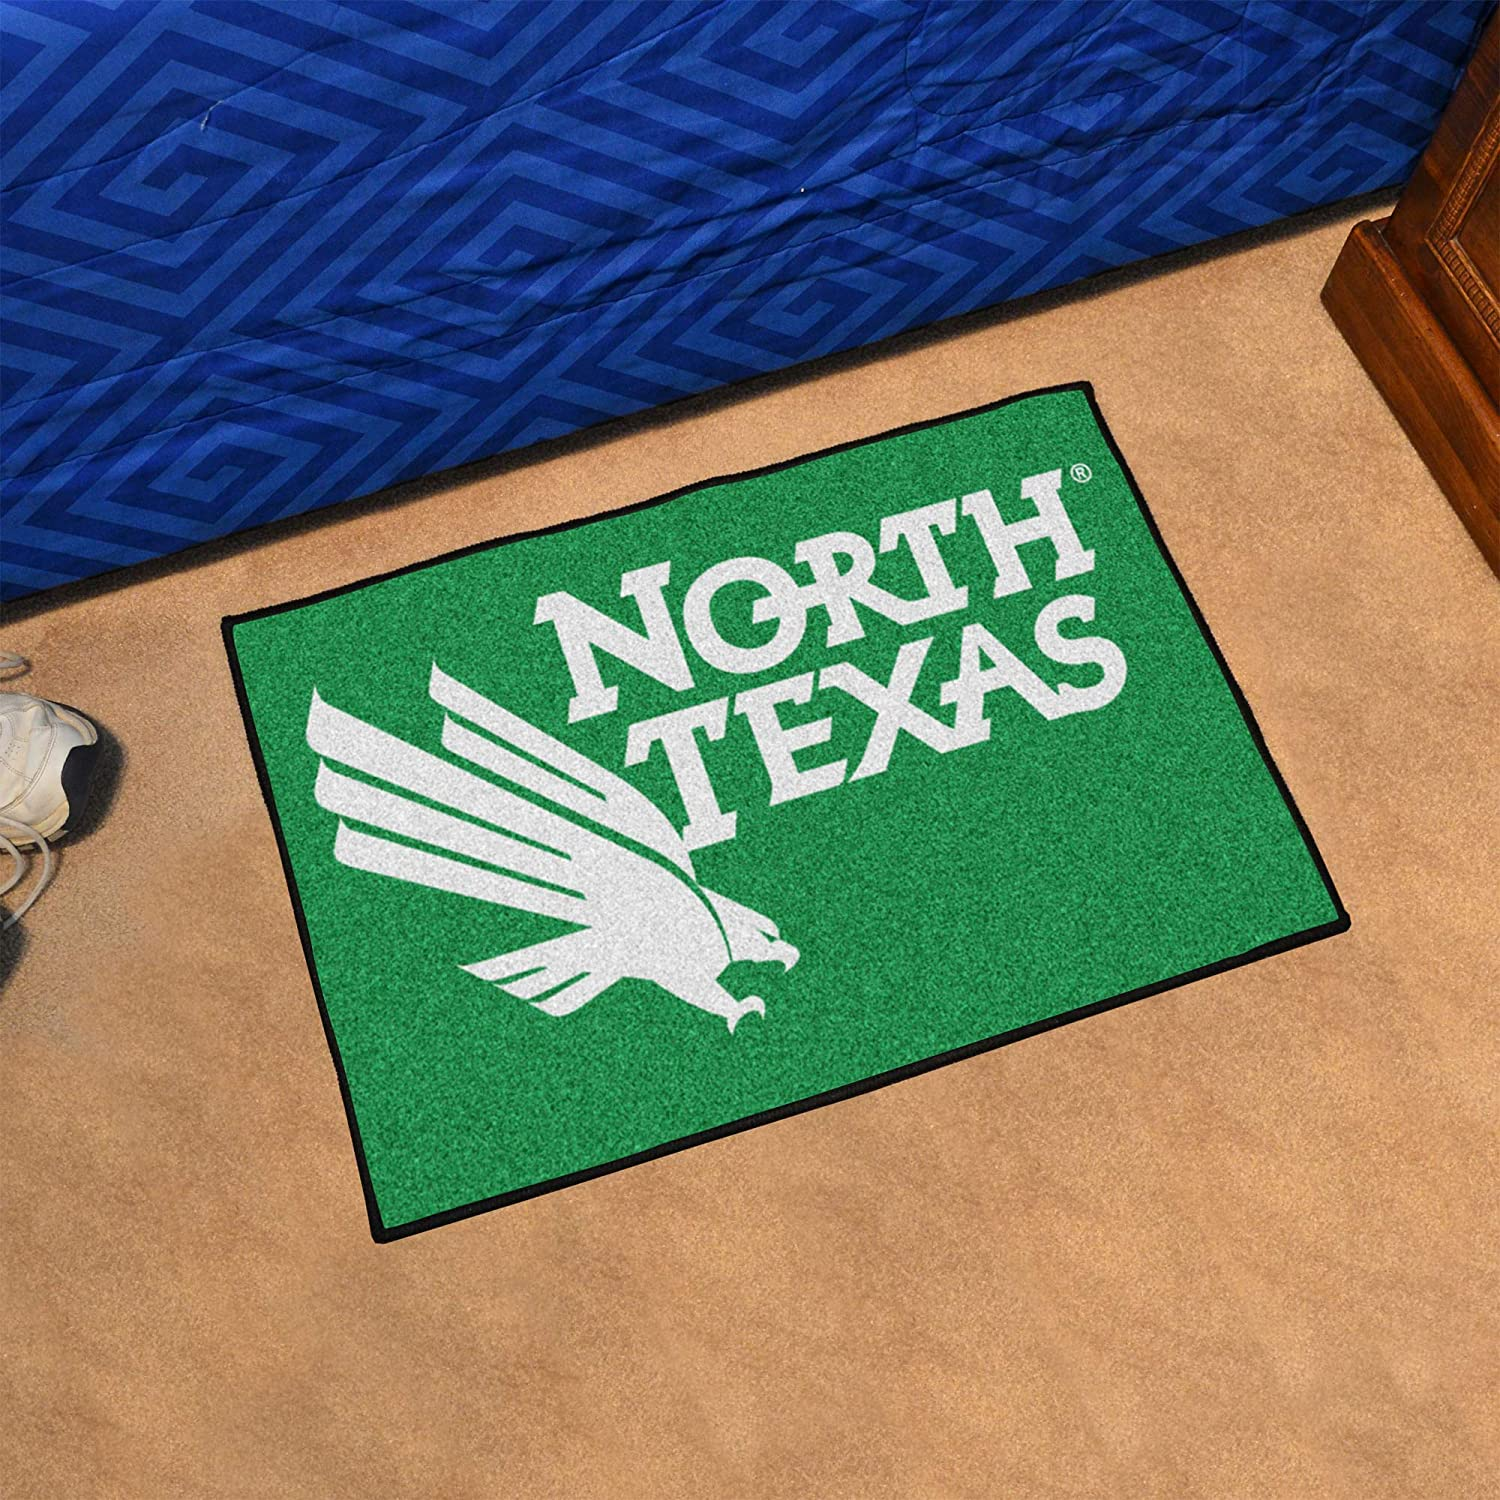 FANMATS 2791 Team Color 19x30 North Texas Starter Rug